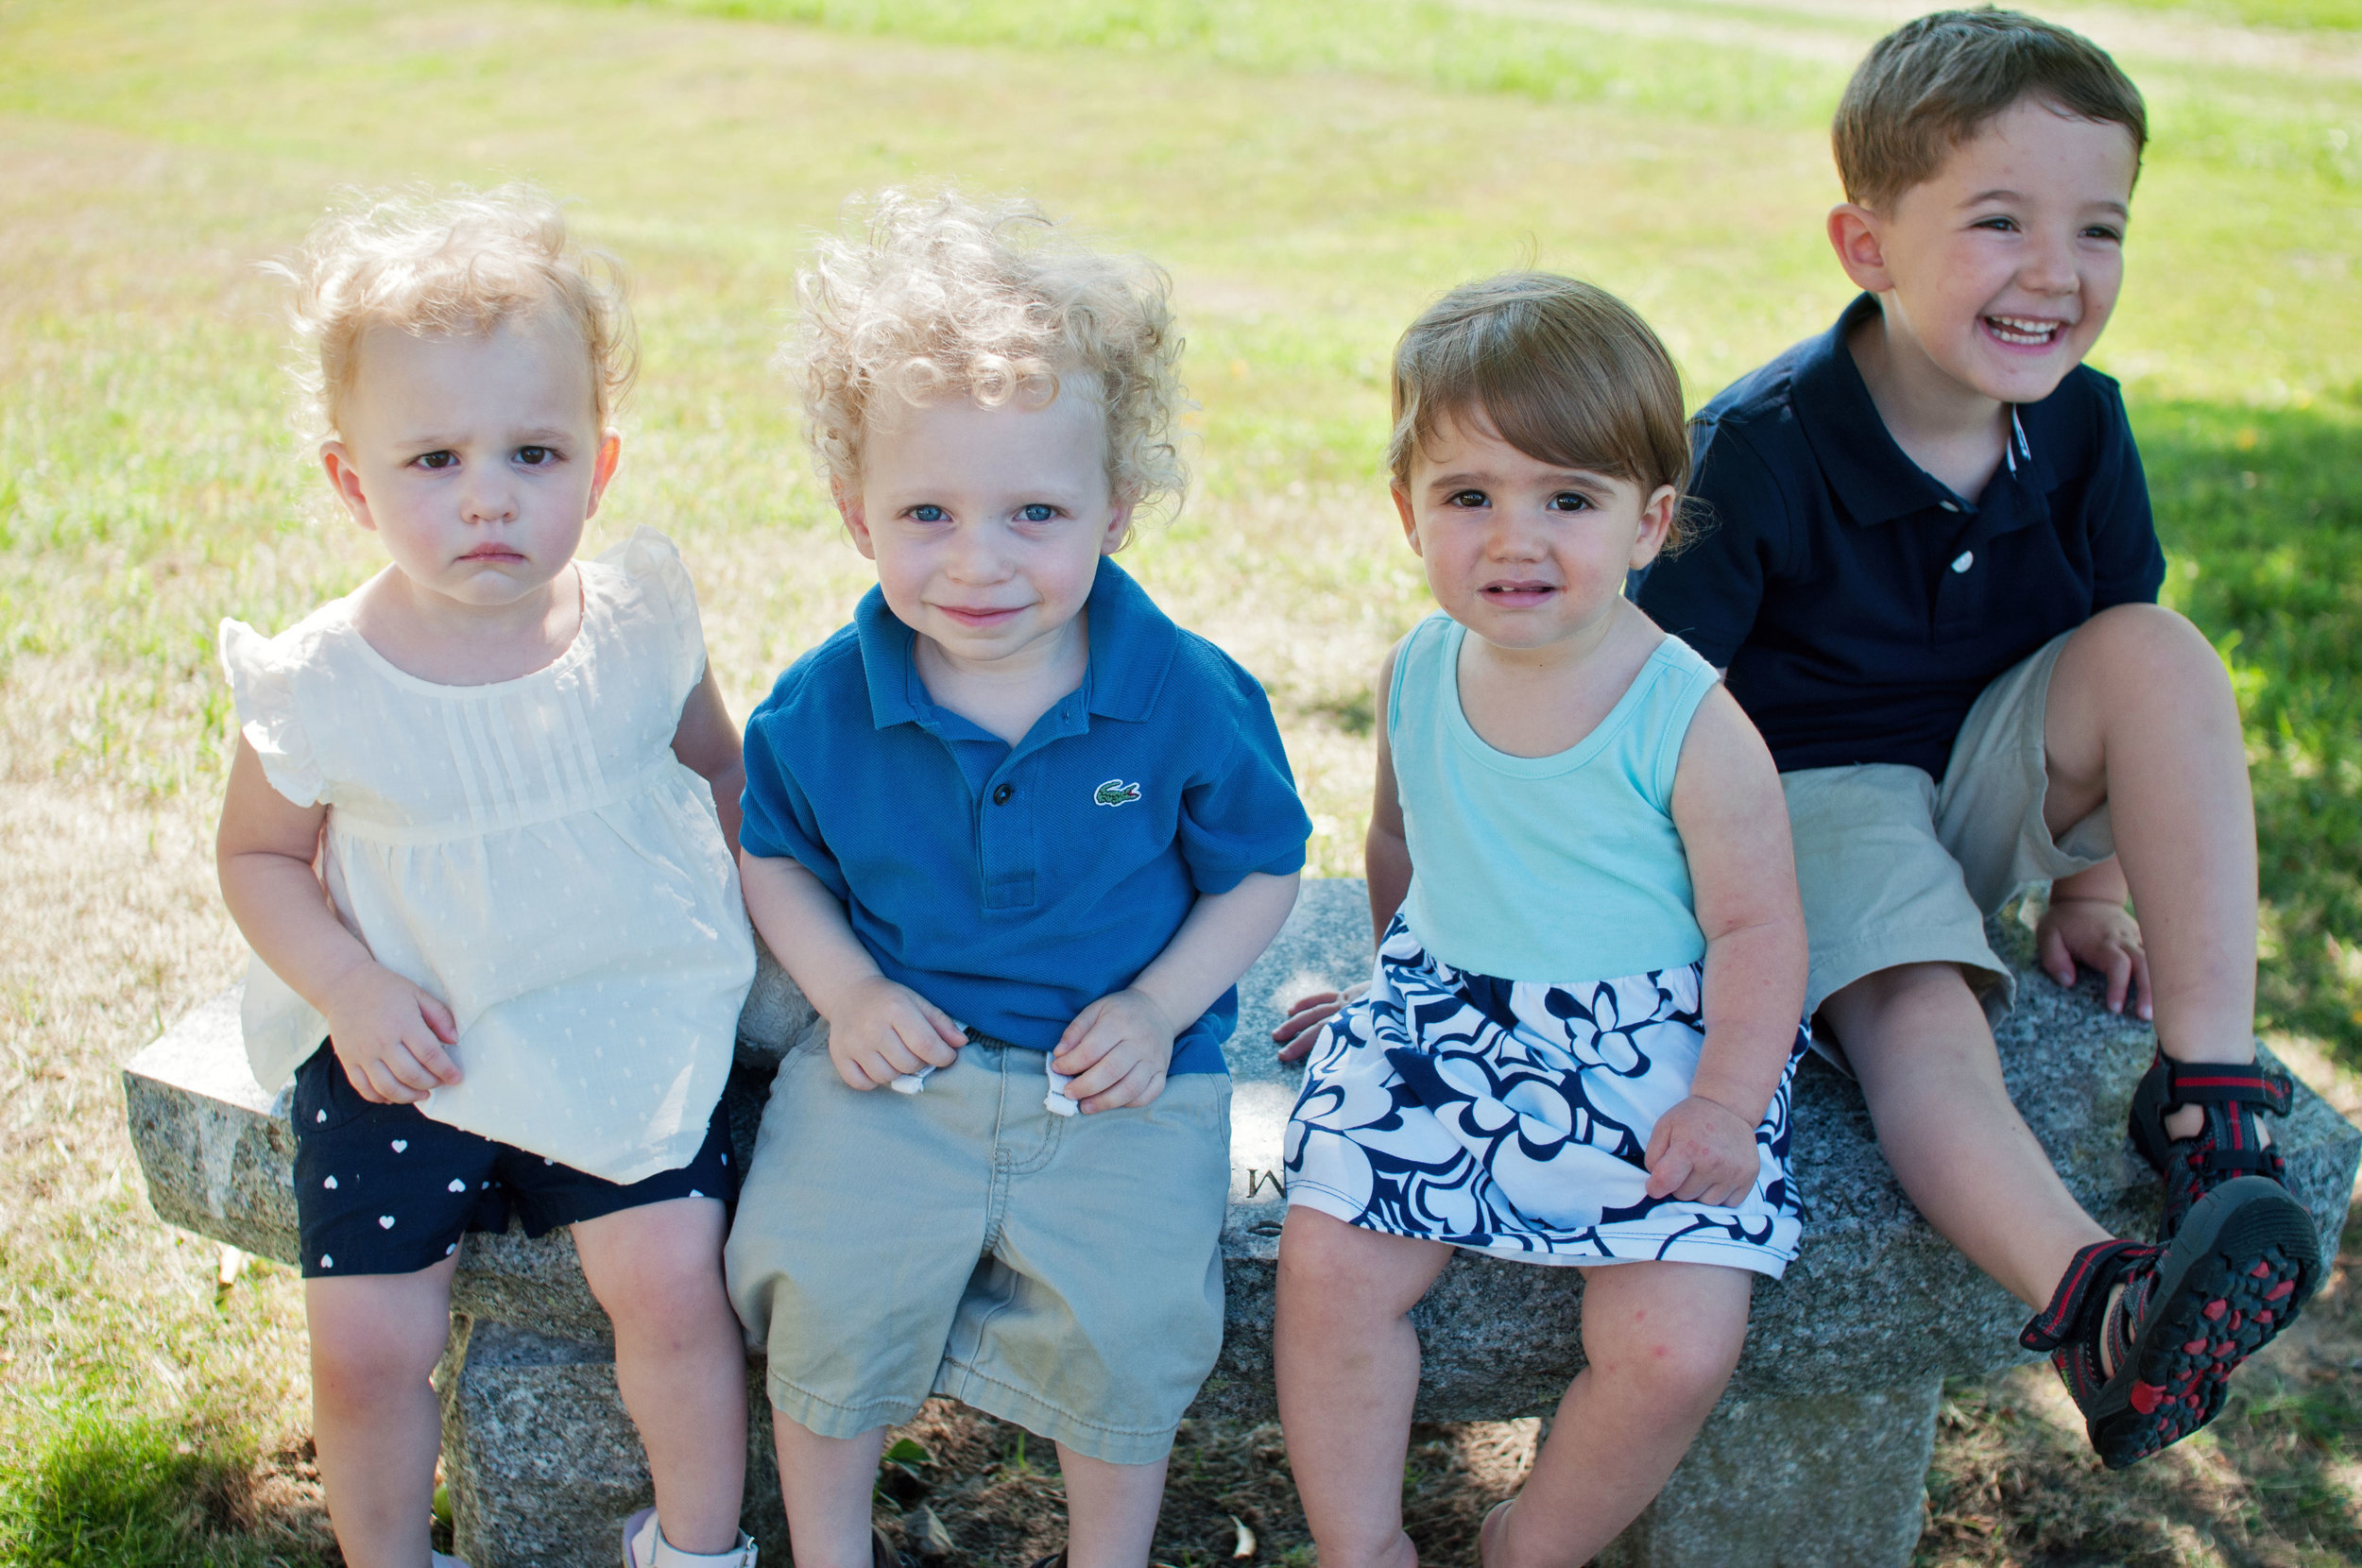 casual portrait of four very young children outdoors